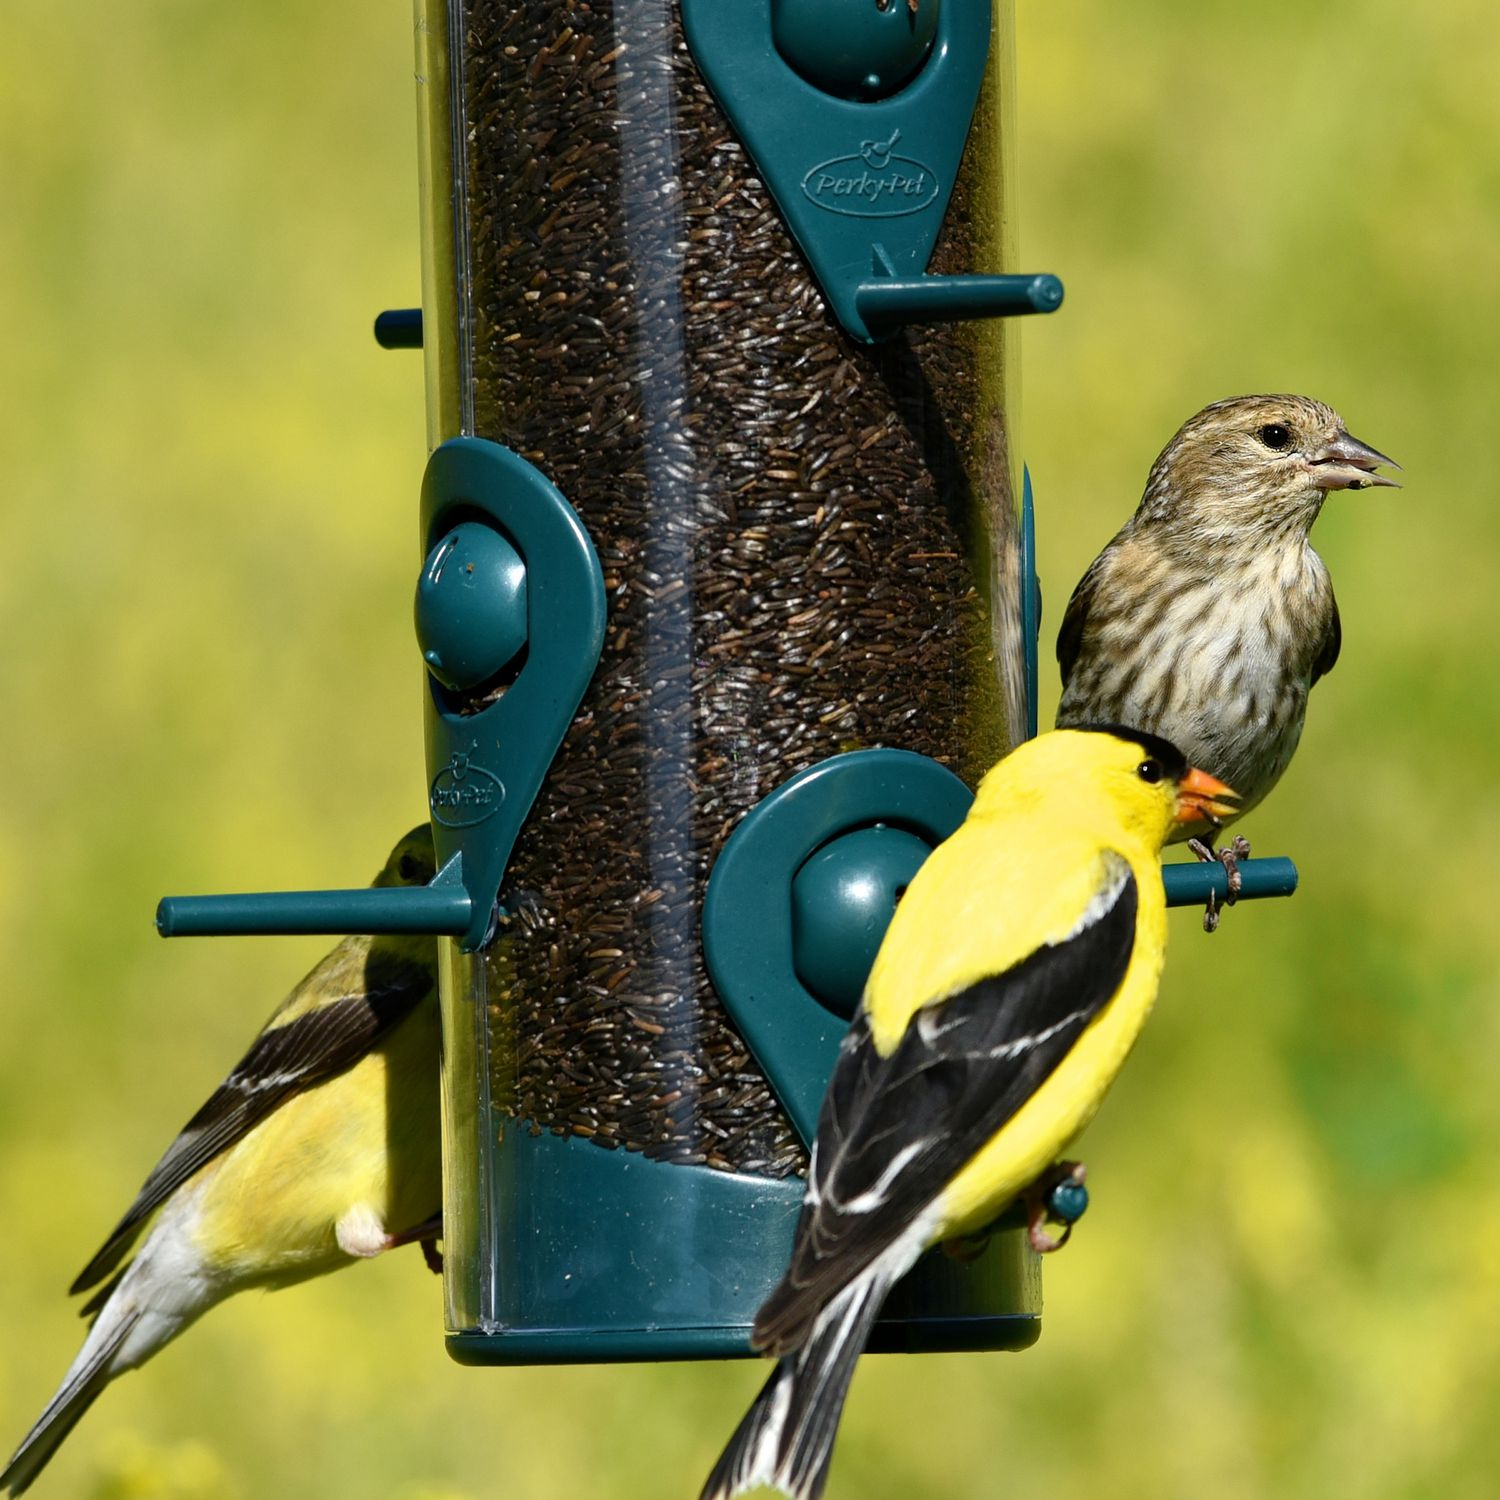 finch housefinch behavior house at new and research acquisition spread feeders of blog colindonner links eye to disease feeder the